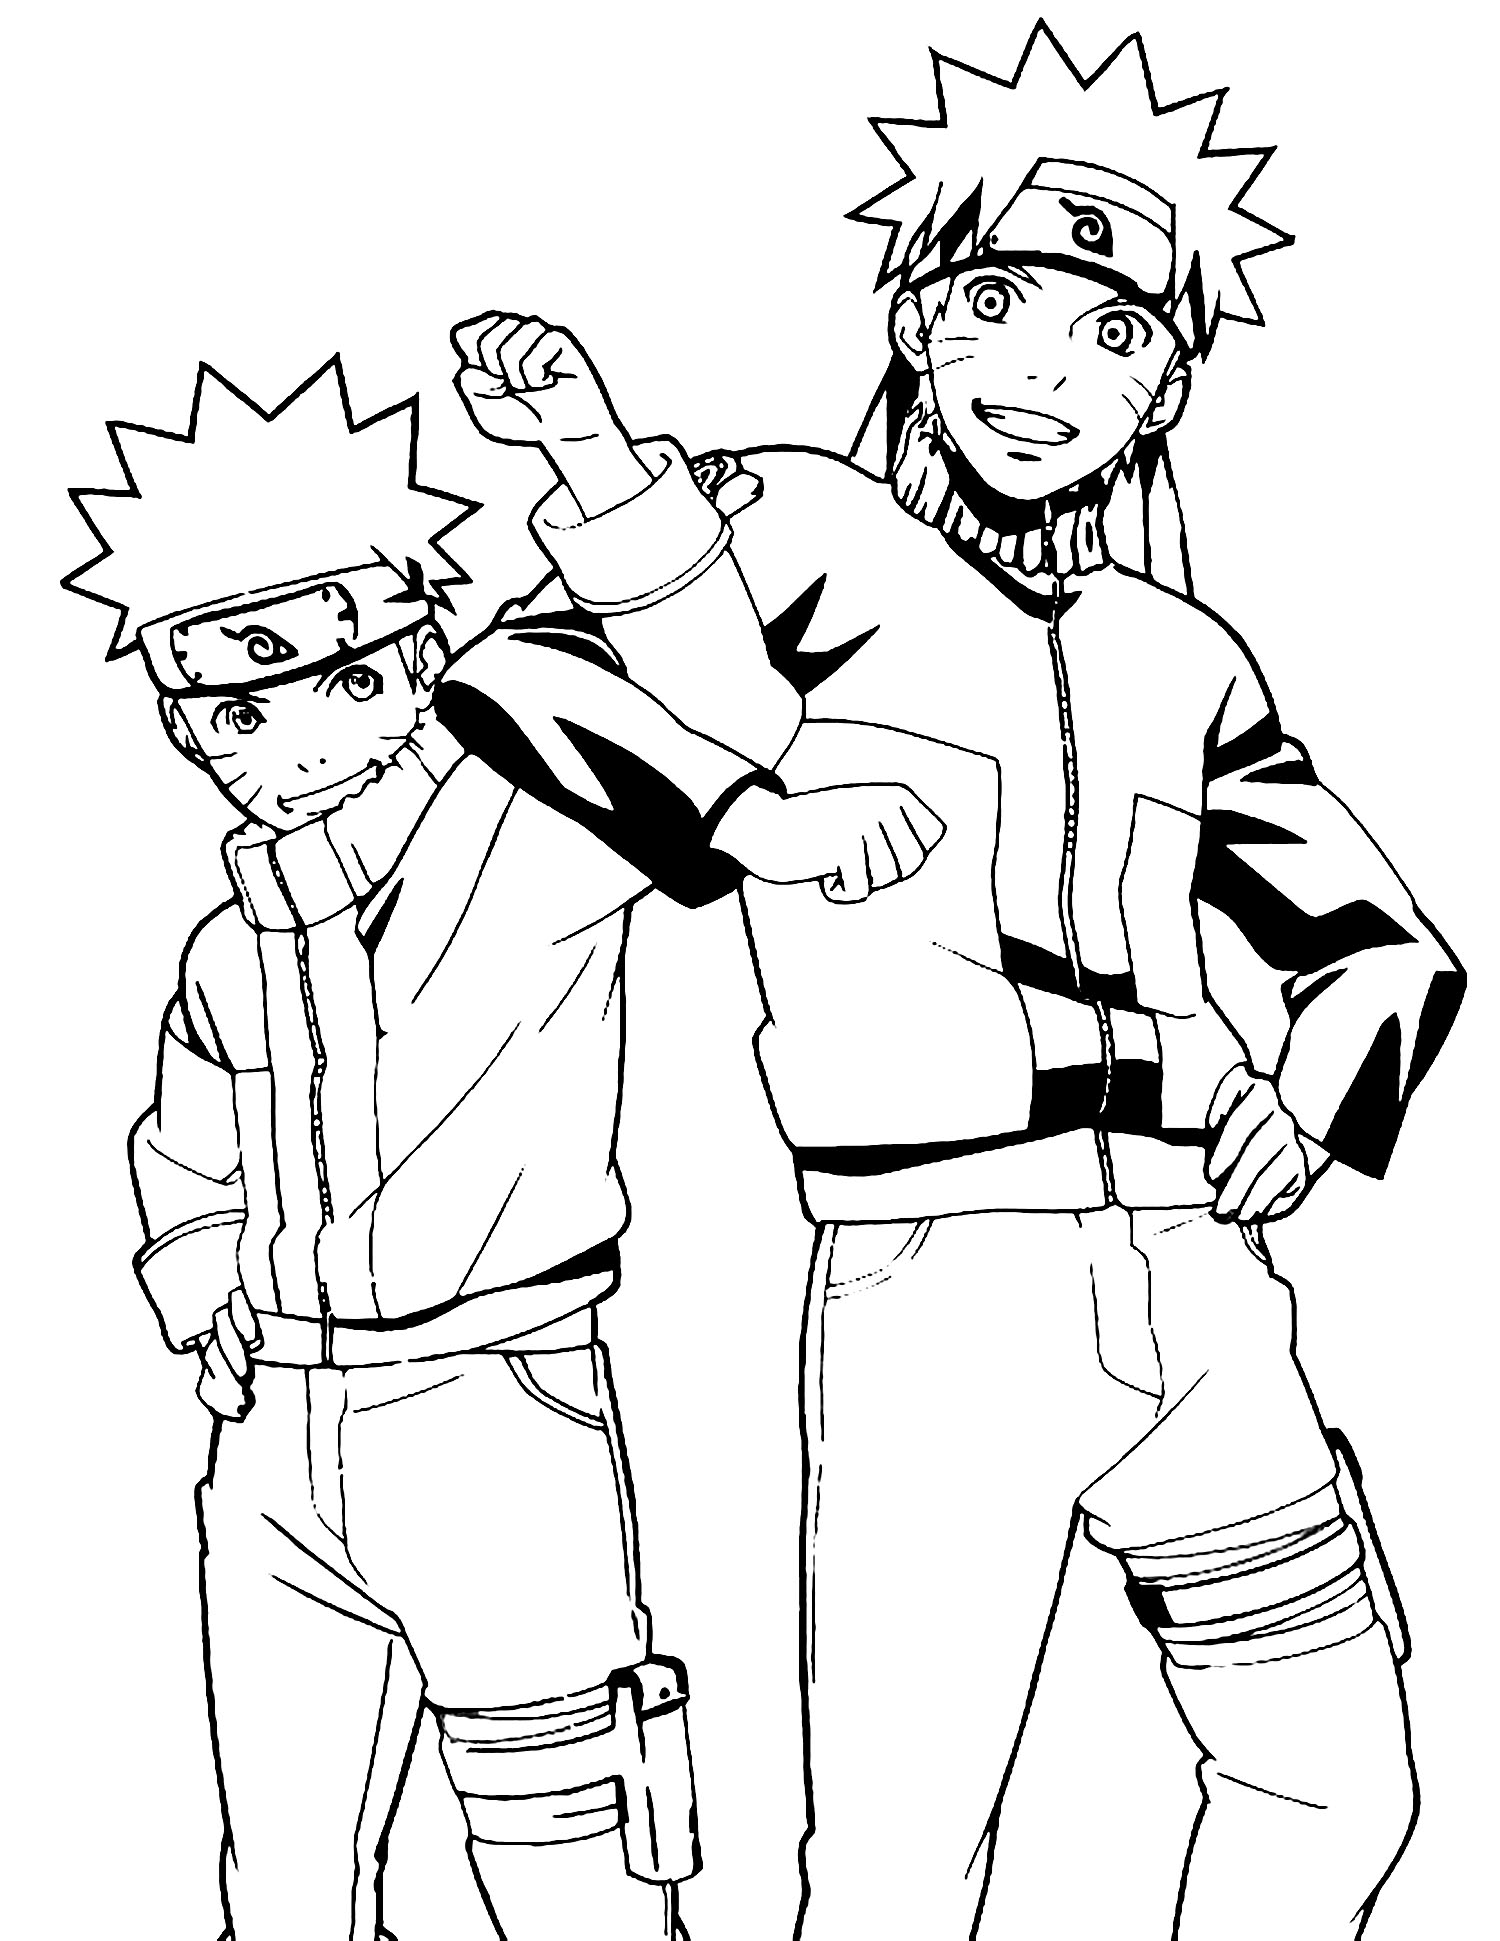 naruto colouring pages printable naruto coloring pages to get your kids occupied pages colouring naruto